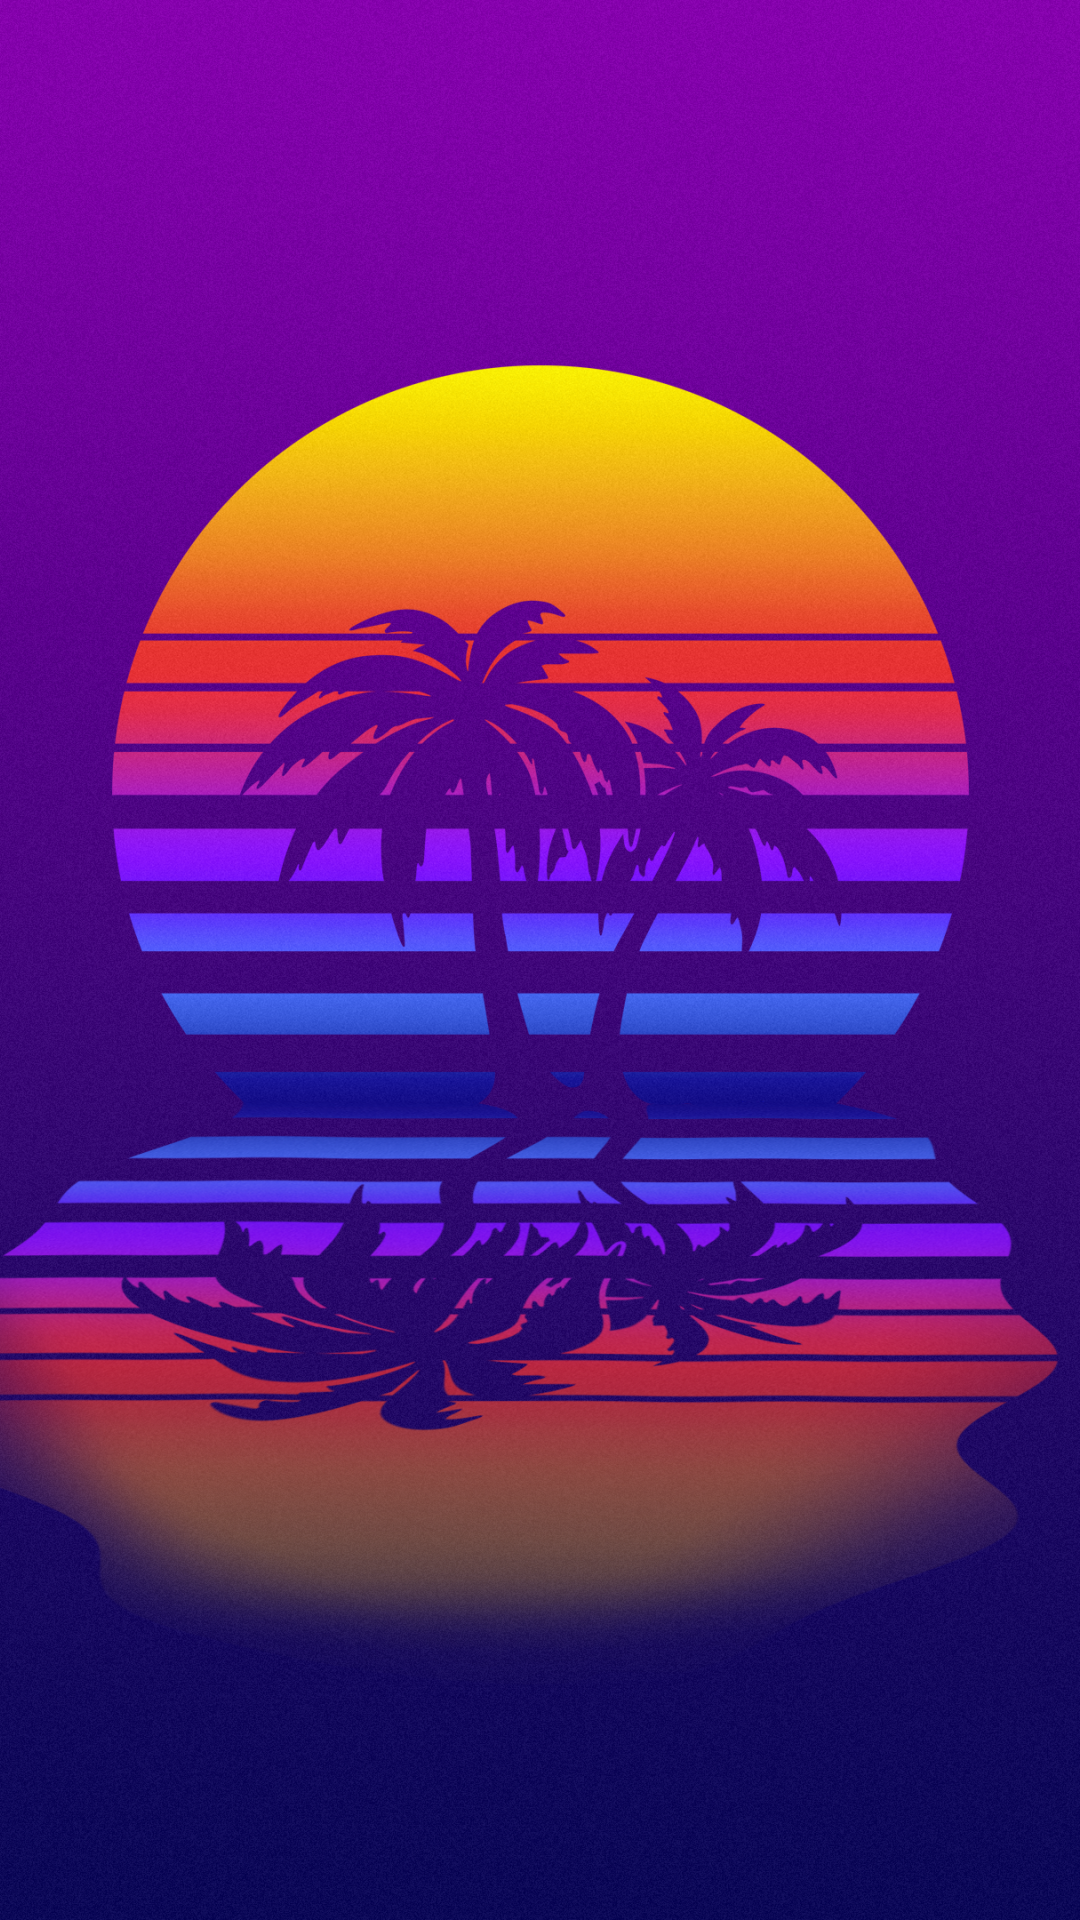 Synthwave Minimal Moon And Palm Tree Wallpaper Vaporwave Wallpaper Palm Trees Wallpaper Retro Wallpaper Iphone